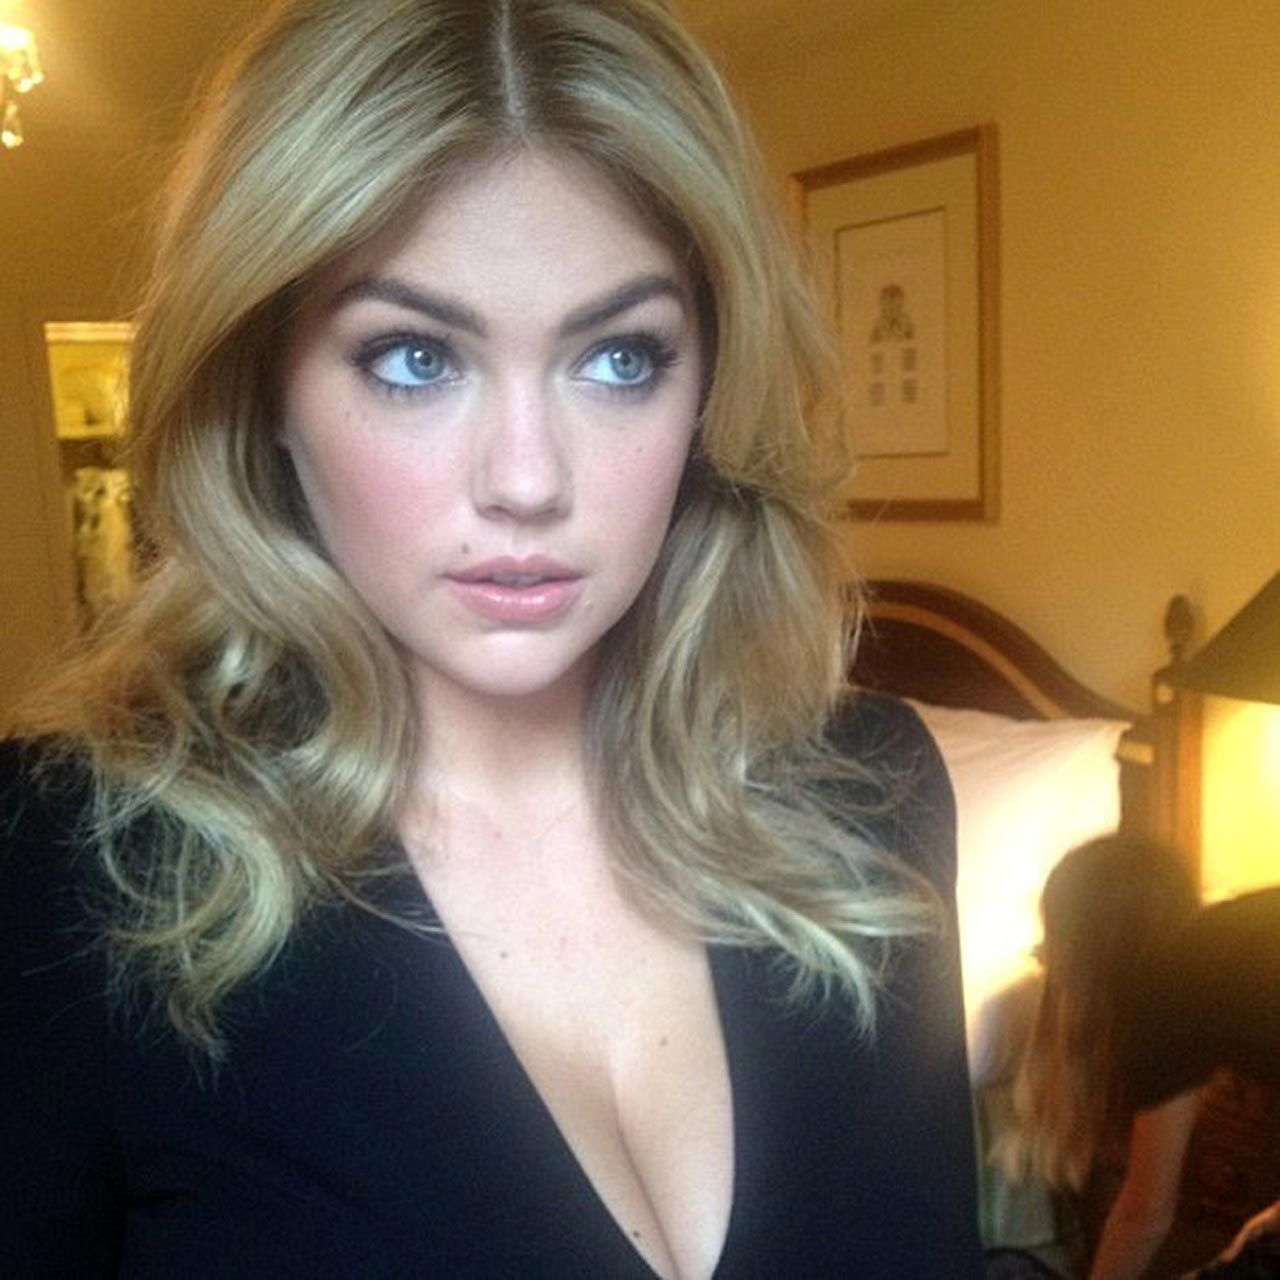 Kate Upton Nude Leaked The Fappening 0026